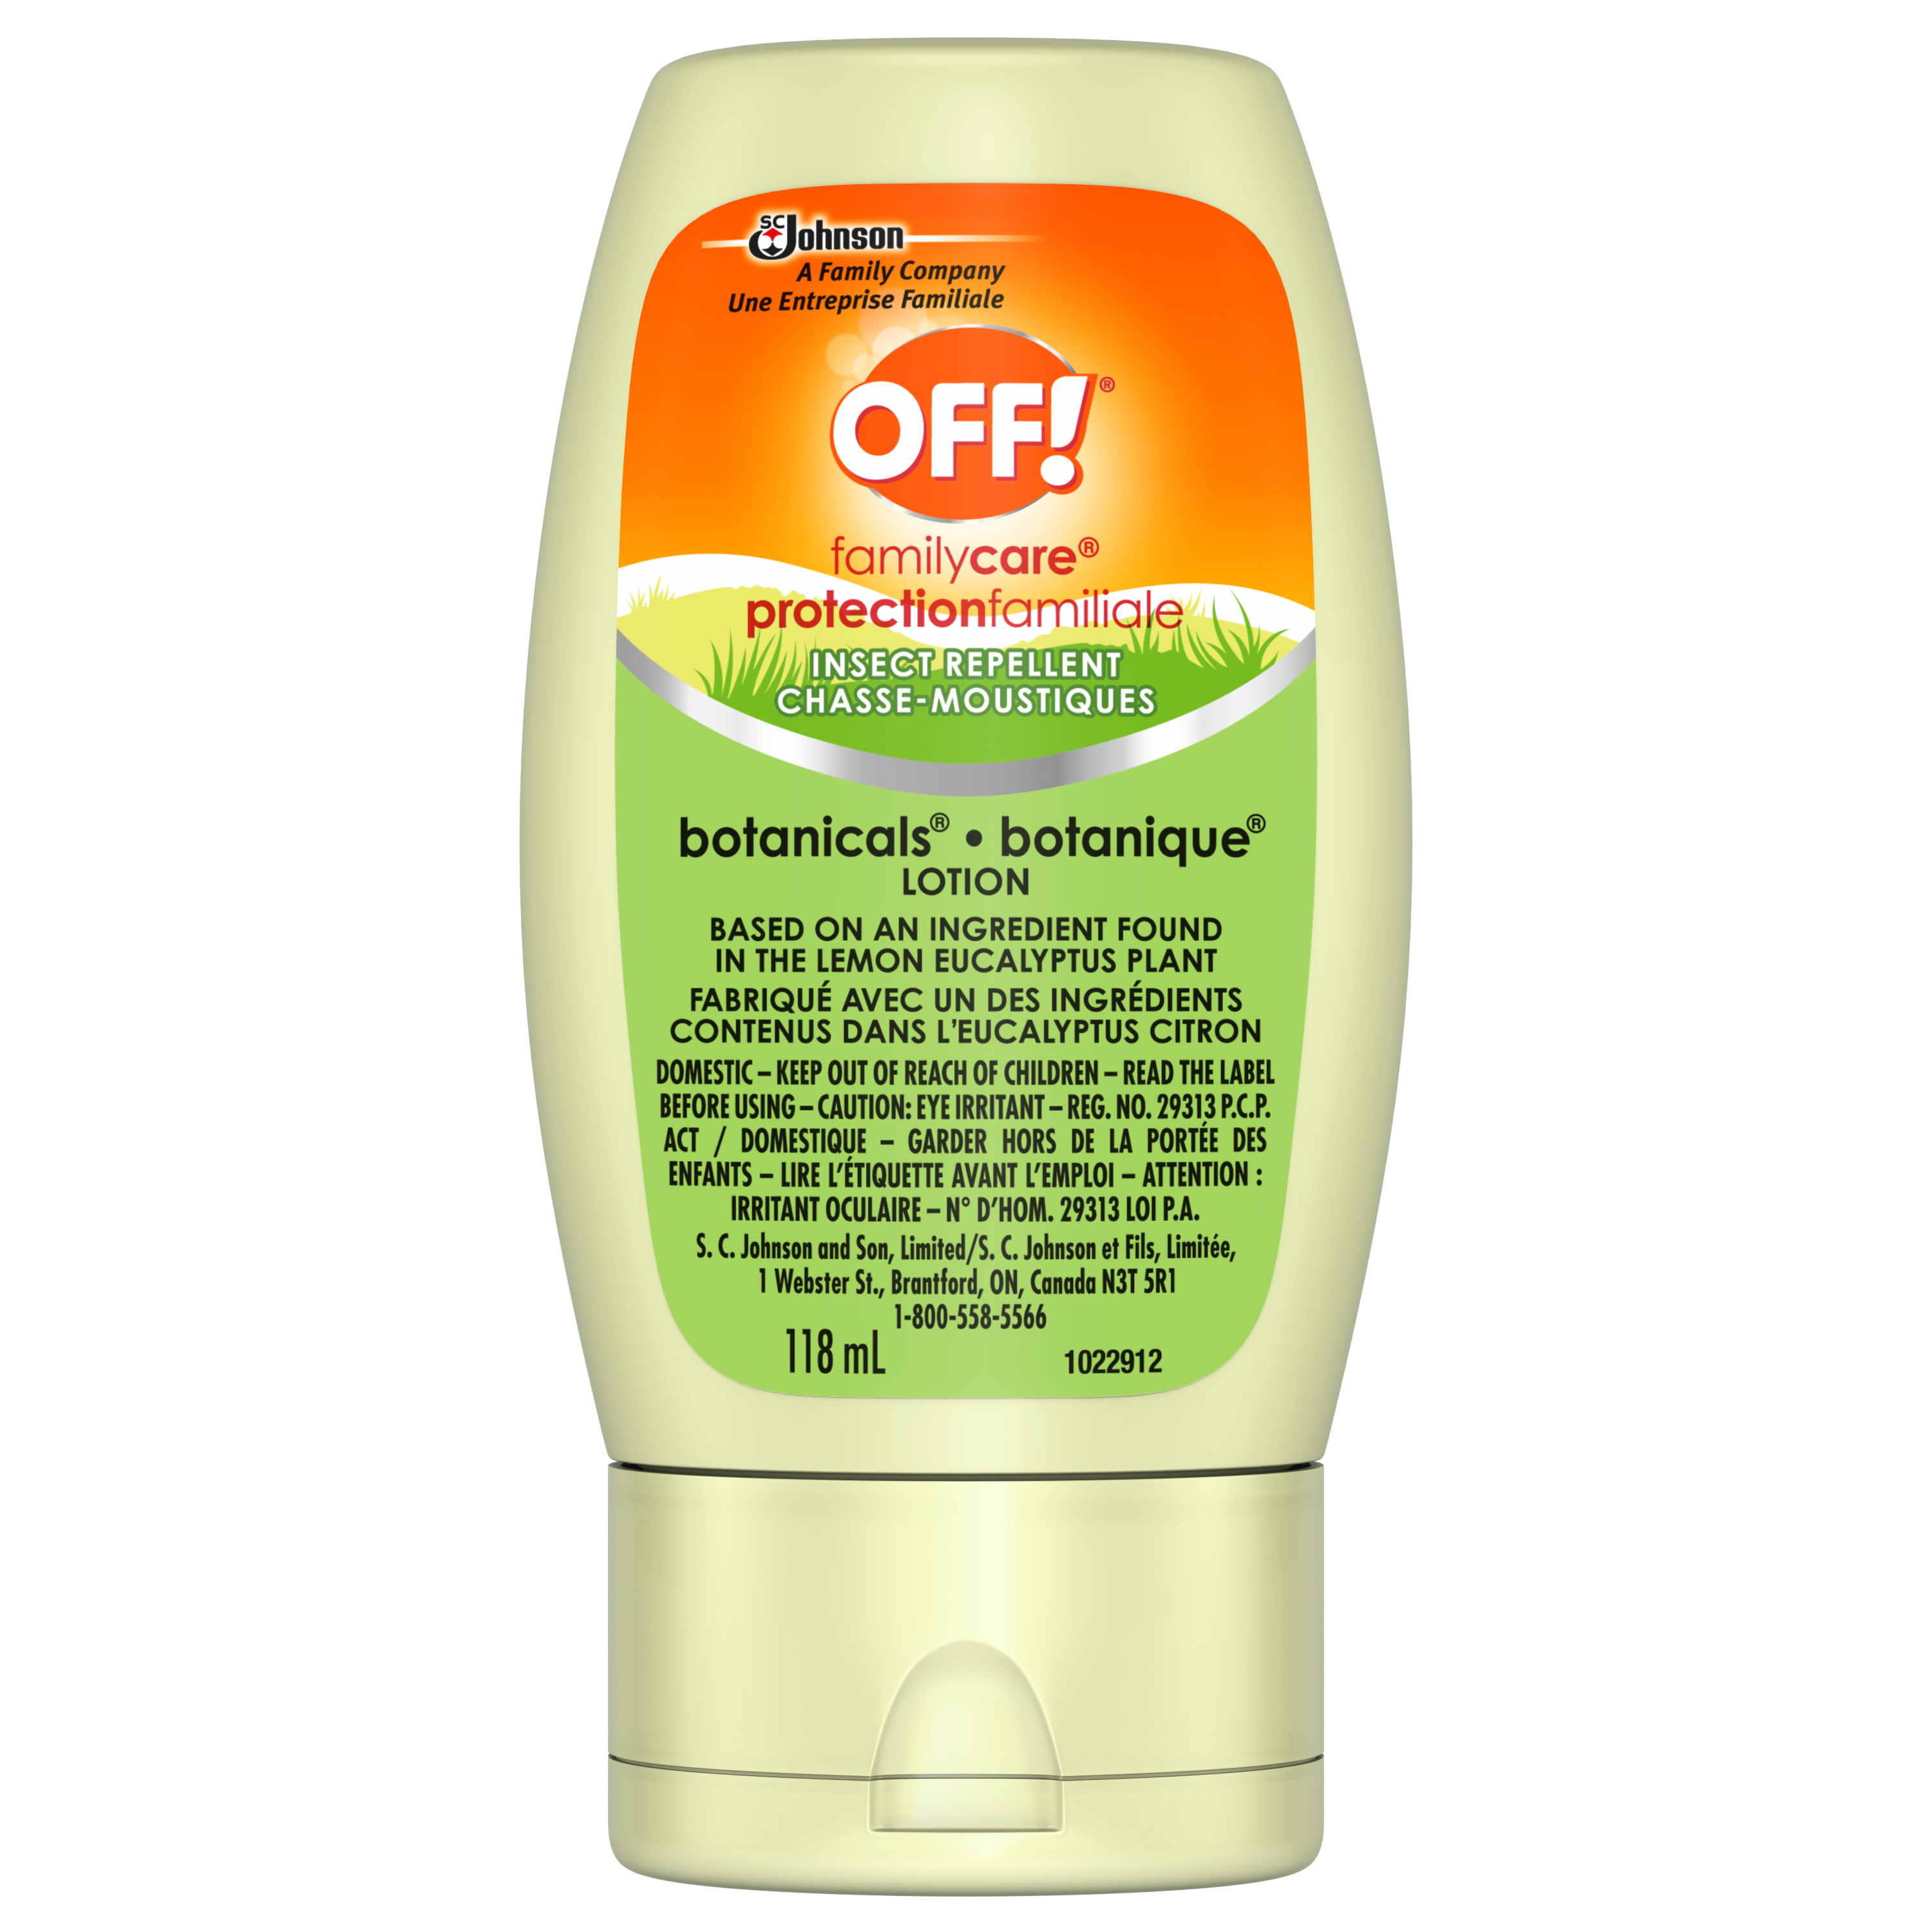 OFF!® FamilyCare® Botanicals Insect Repellent Lotion